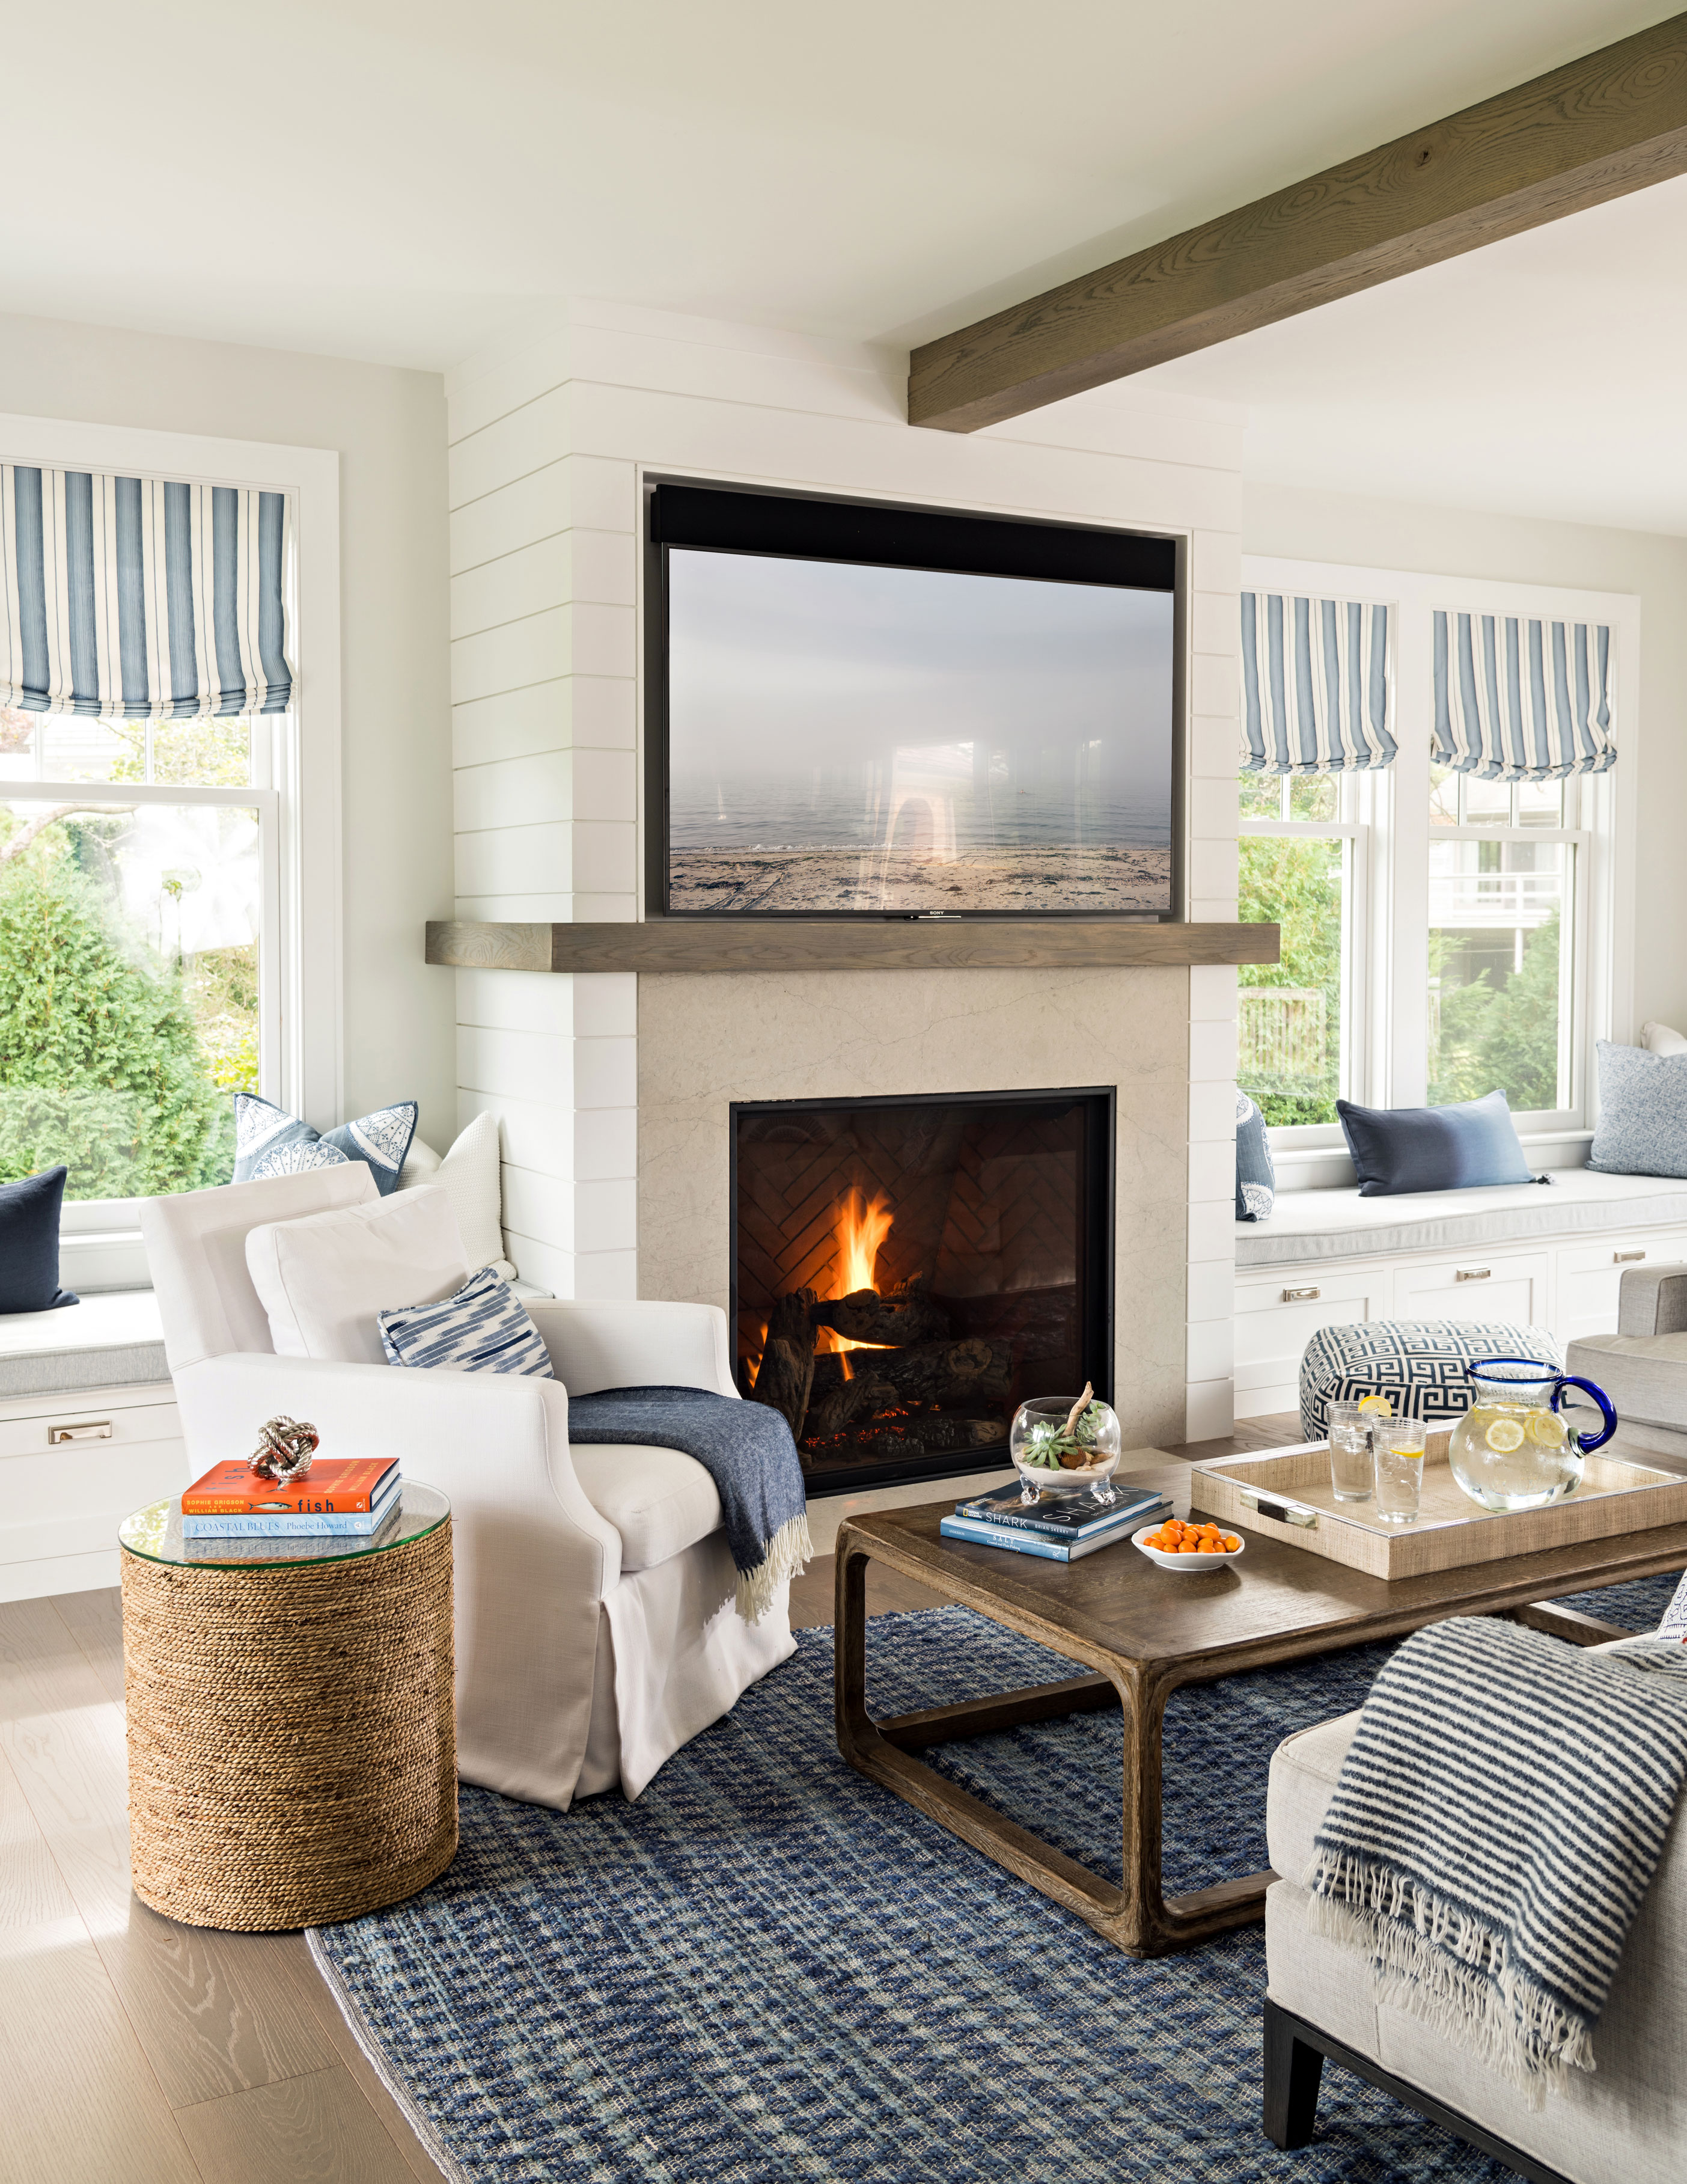 Family room with white furniture and shiplap fireplace with fire burning in fireplace